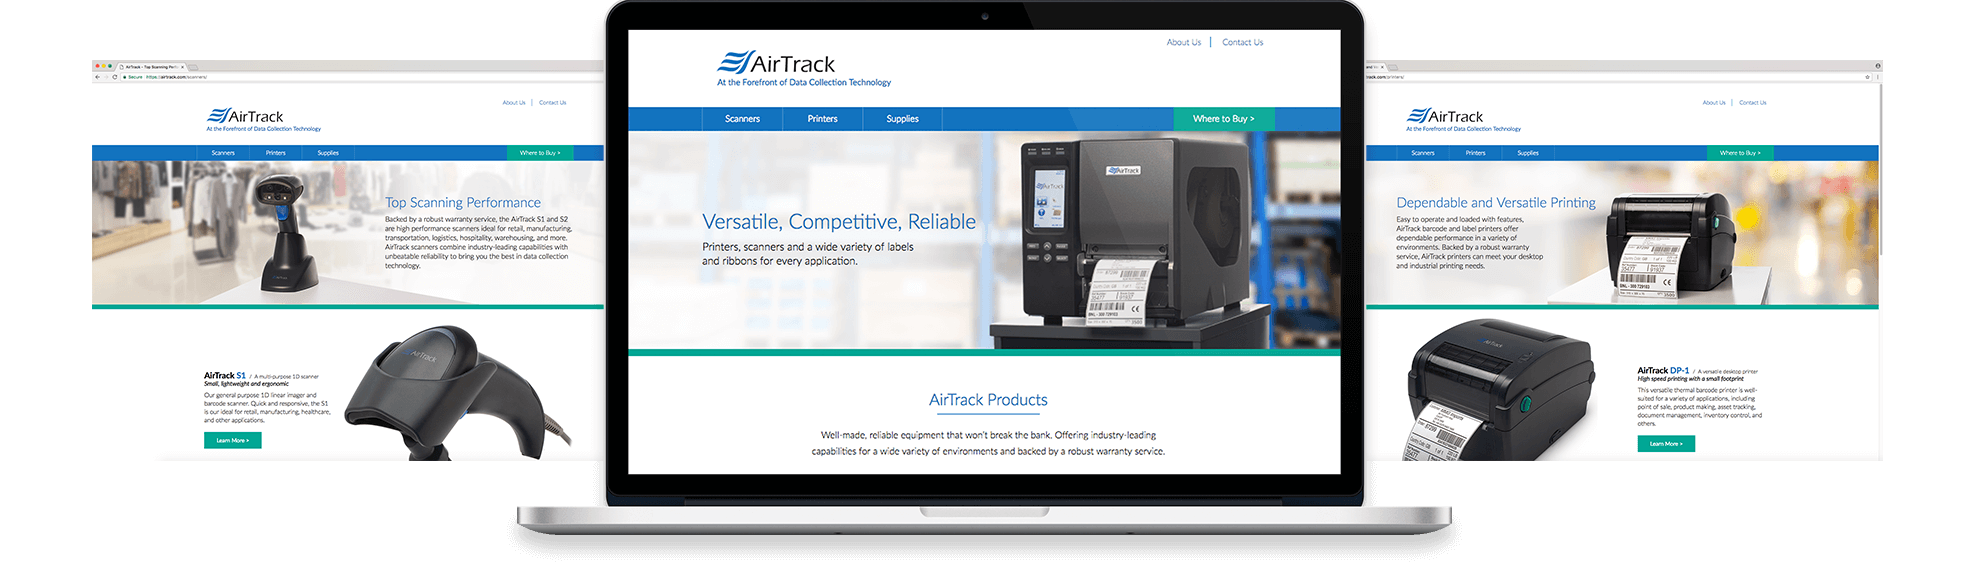 Airtrack Marketing Materials